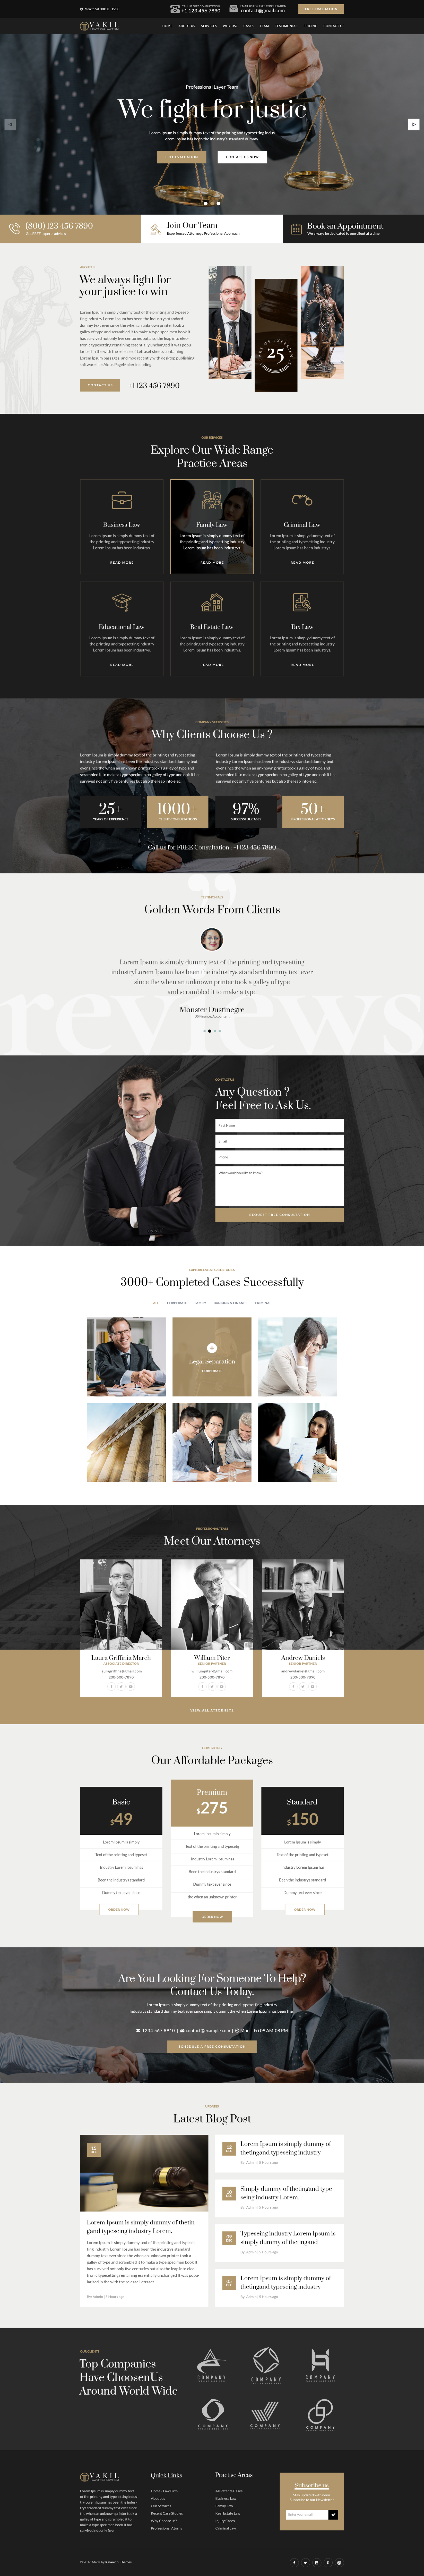 Find The Best Ny Construction Work Lawyer, Manhattan Near You